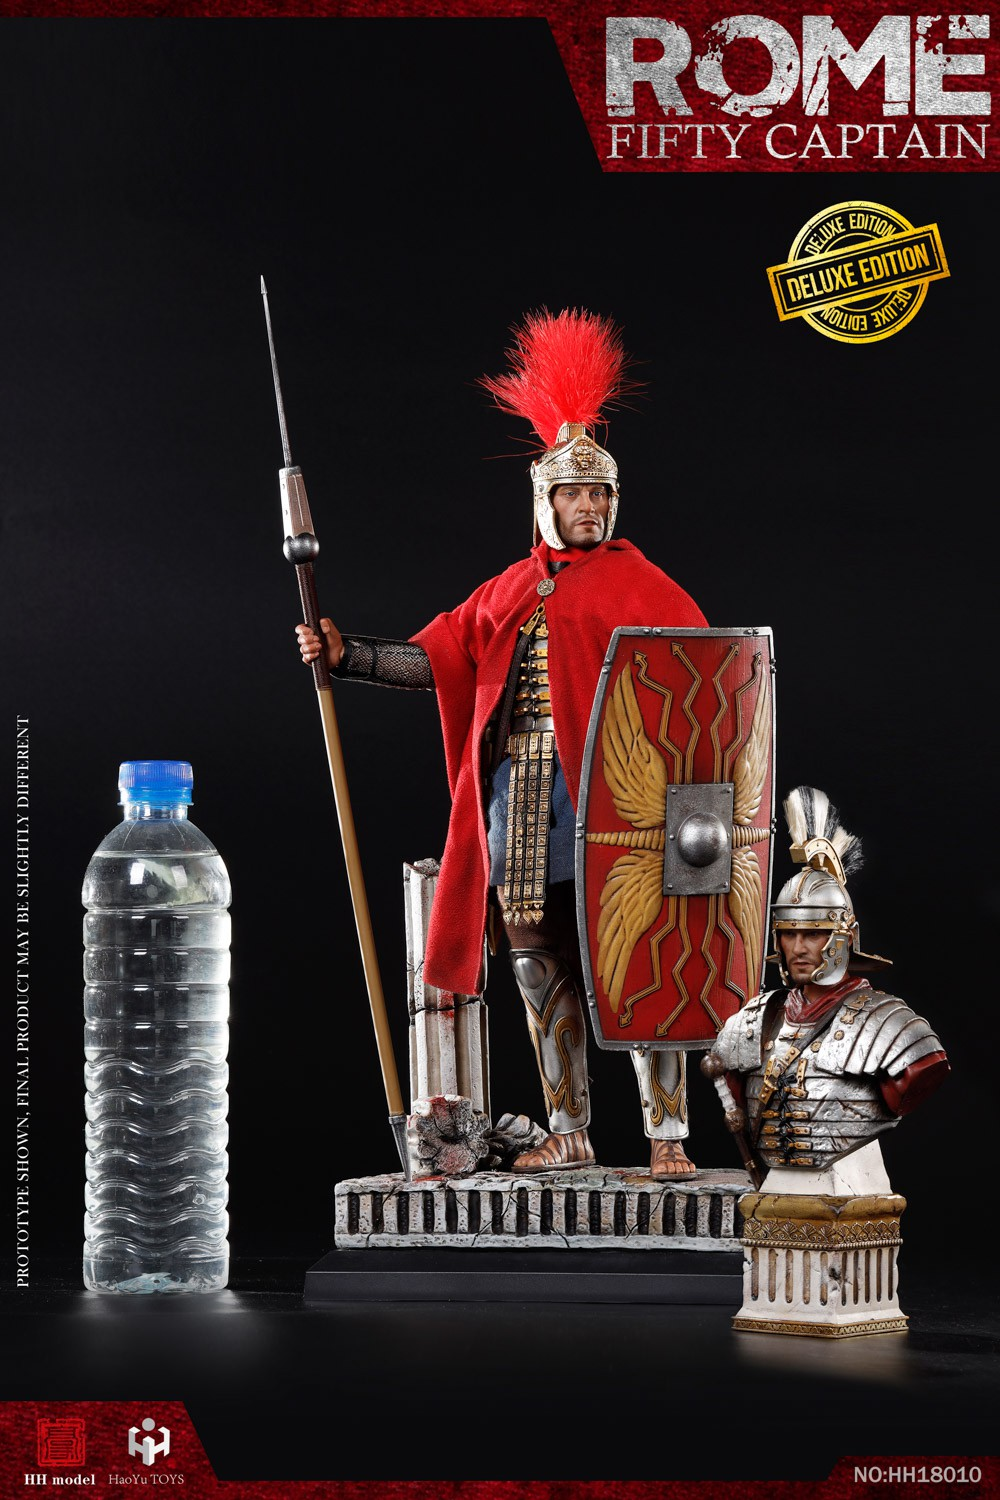 haoyutoys - NEW PRODUCT: HHmodel & HaoYuTOYS: 1/6 Imperial Legion-Heavy Soldier Fifty Captain [A total of three versions] & Scorpion 10244810